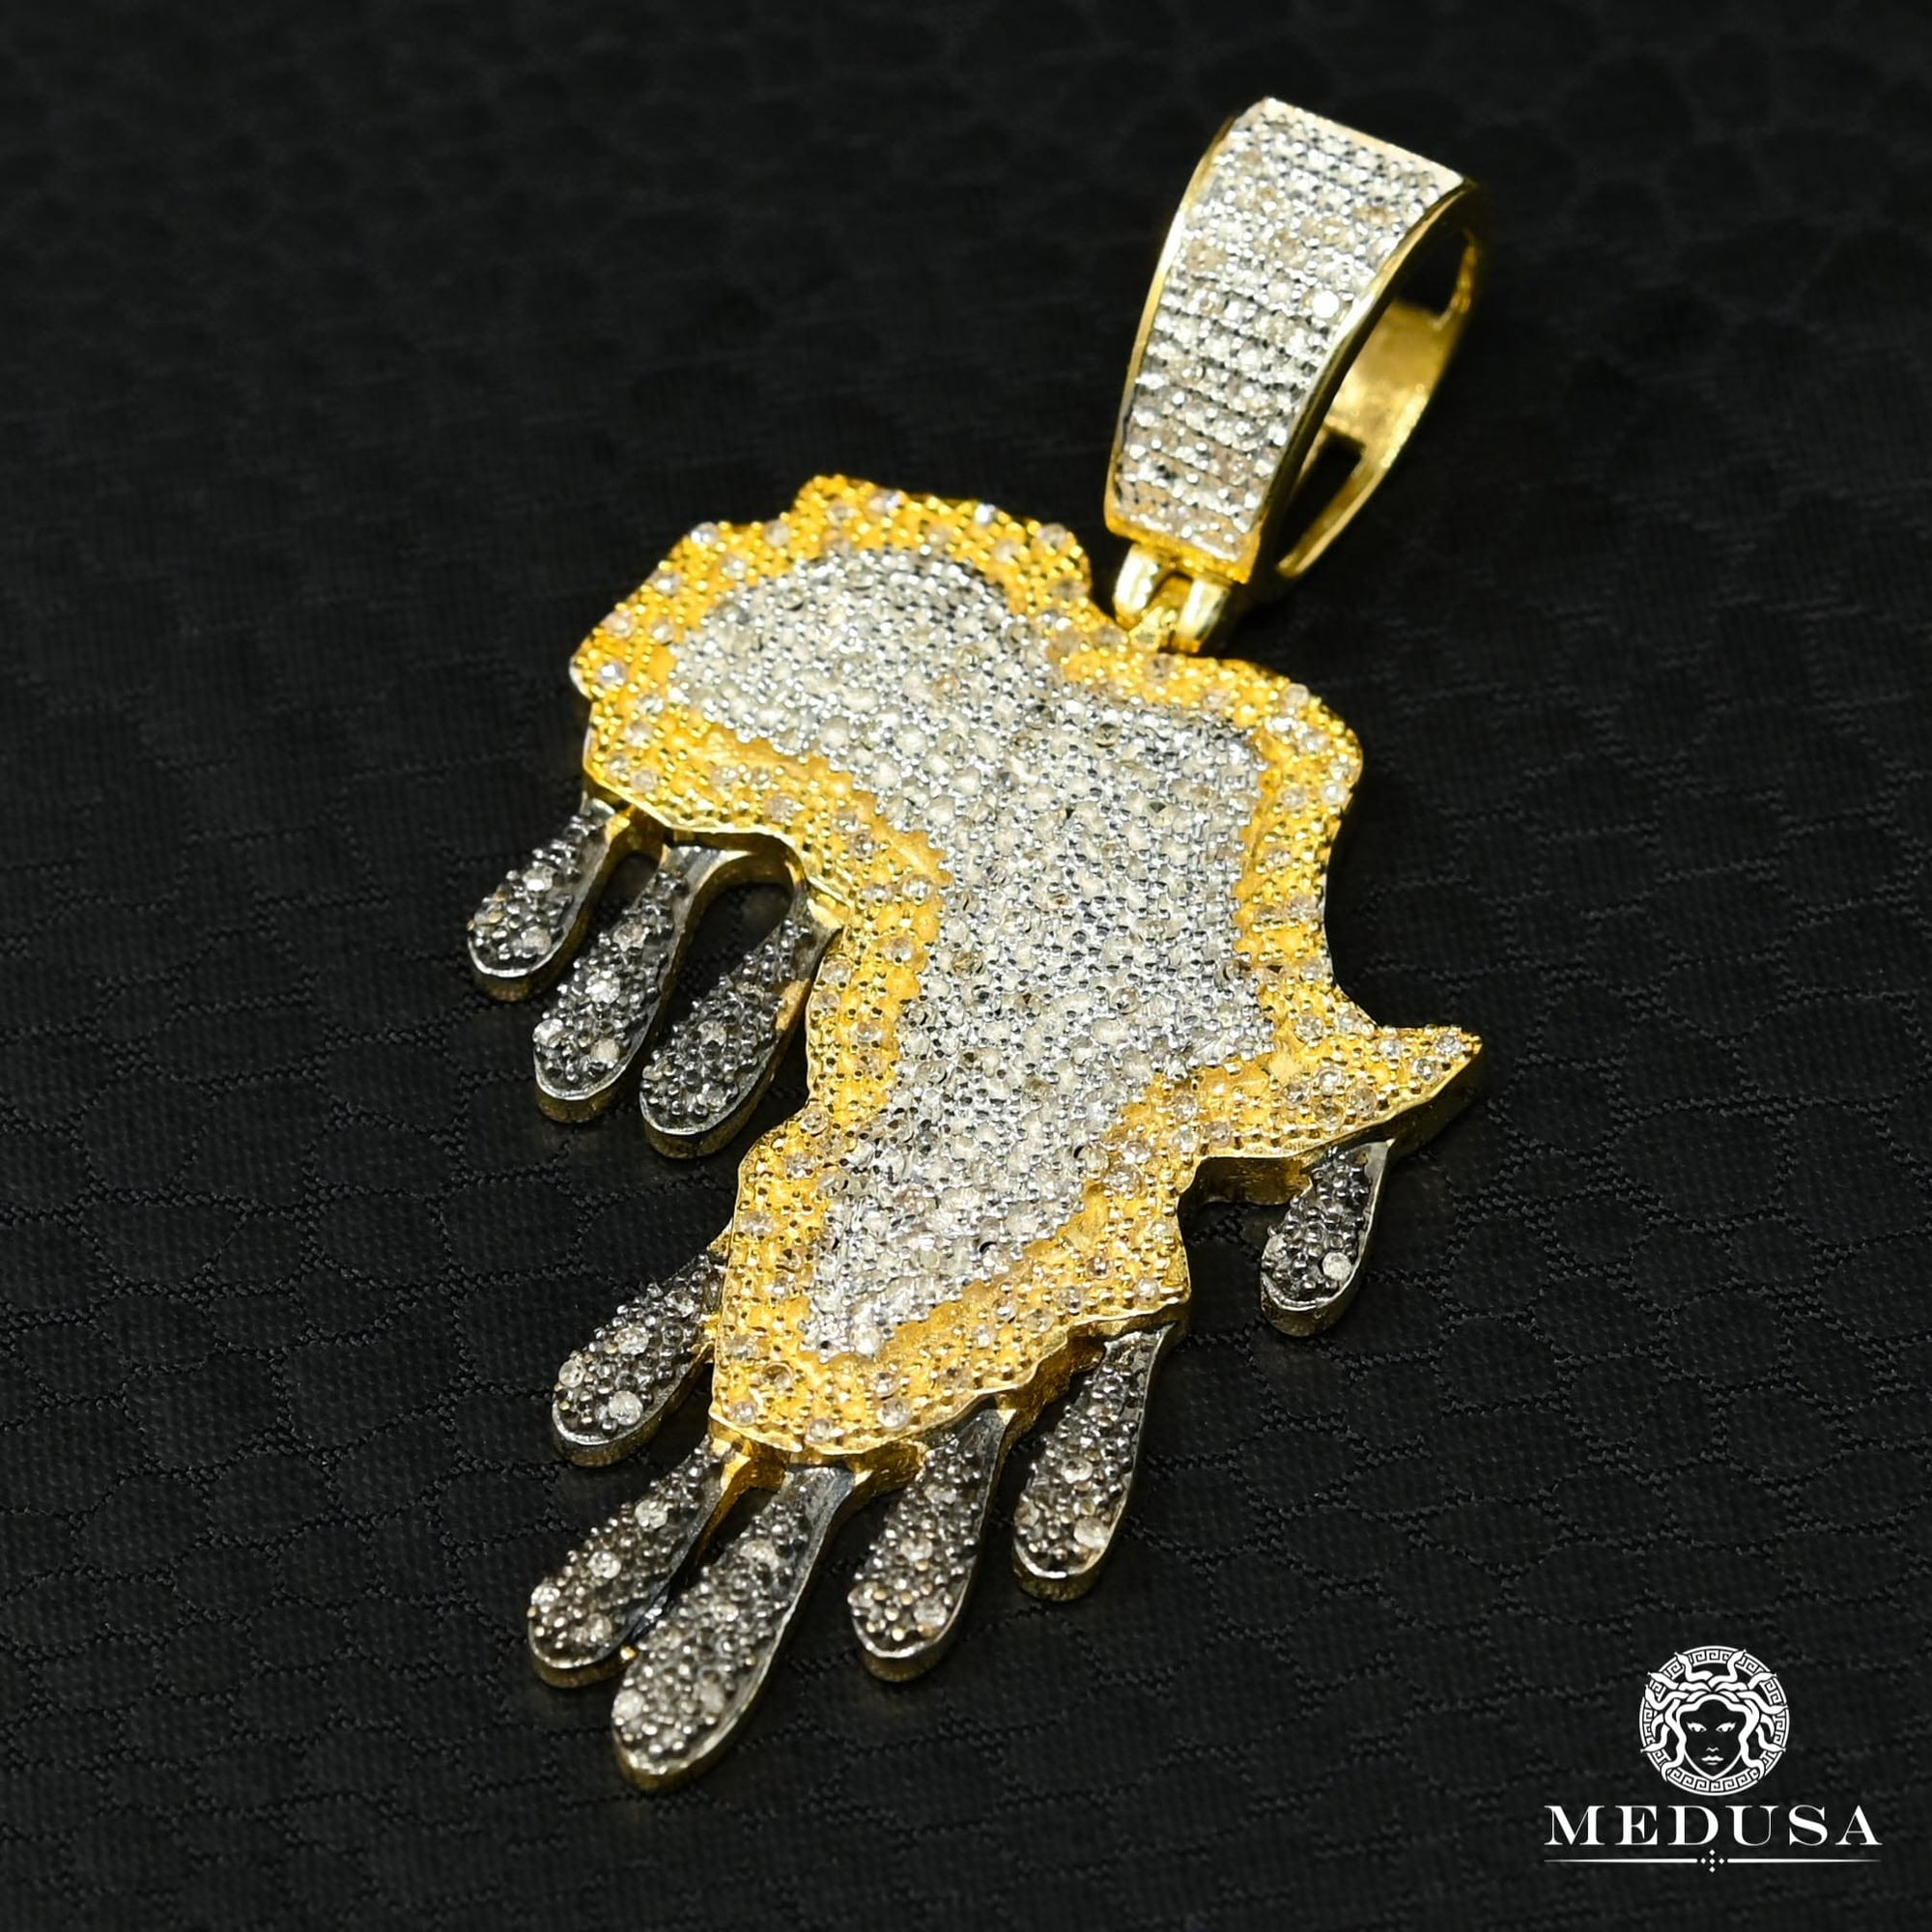 Pendentif à Diamants en Or 10K | Pendentif Divers Africa D2 - Diamant Or 2 Tons